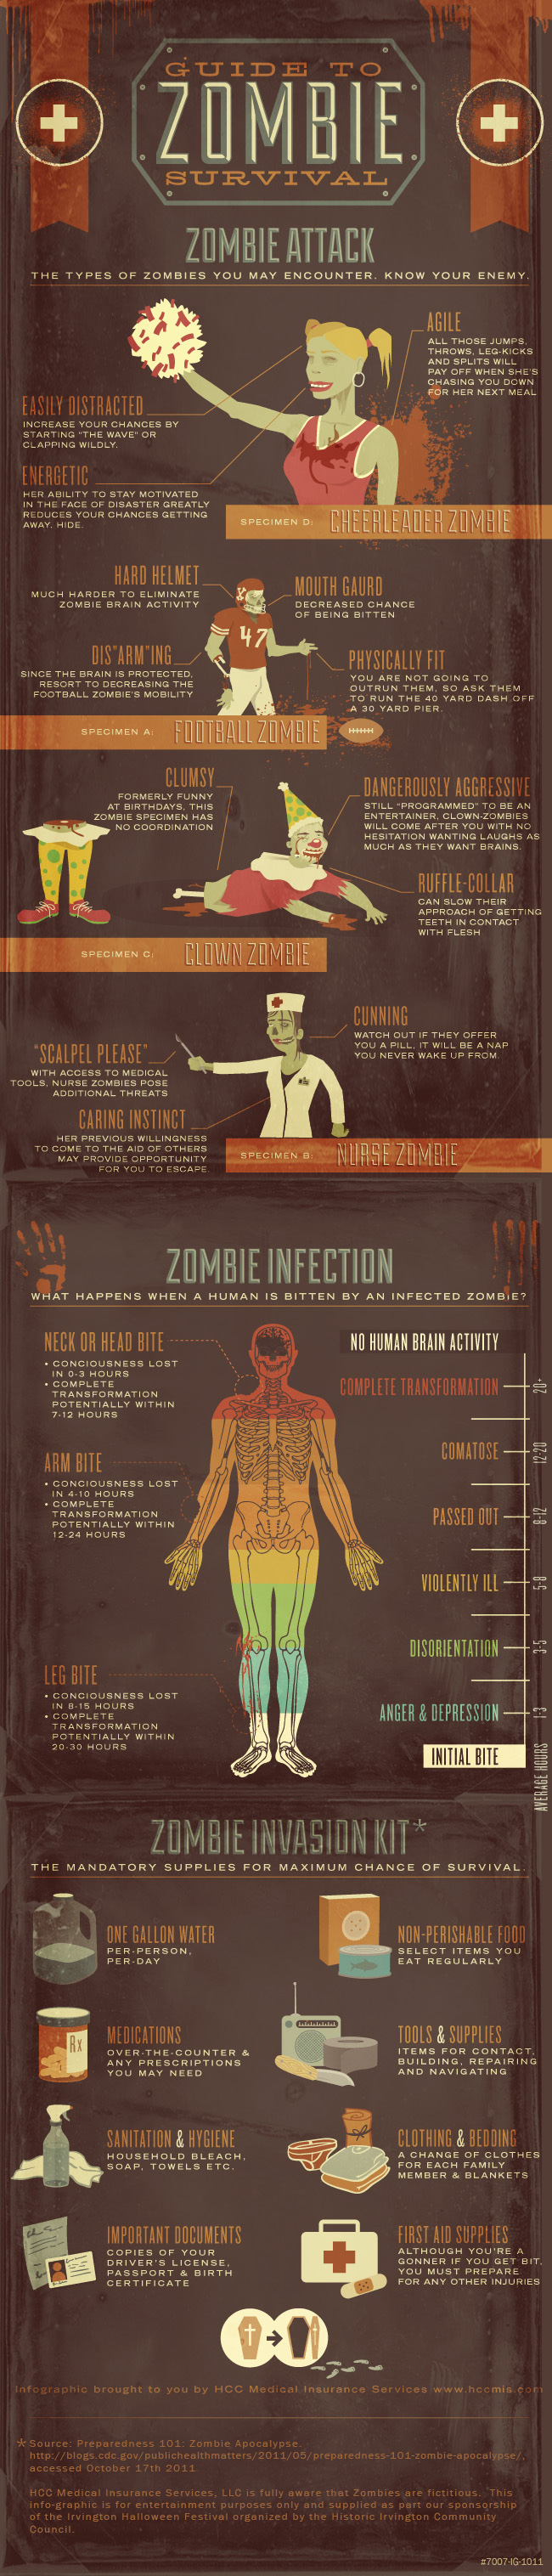 Infographic Zombie aanval survival gids